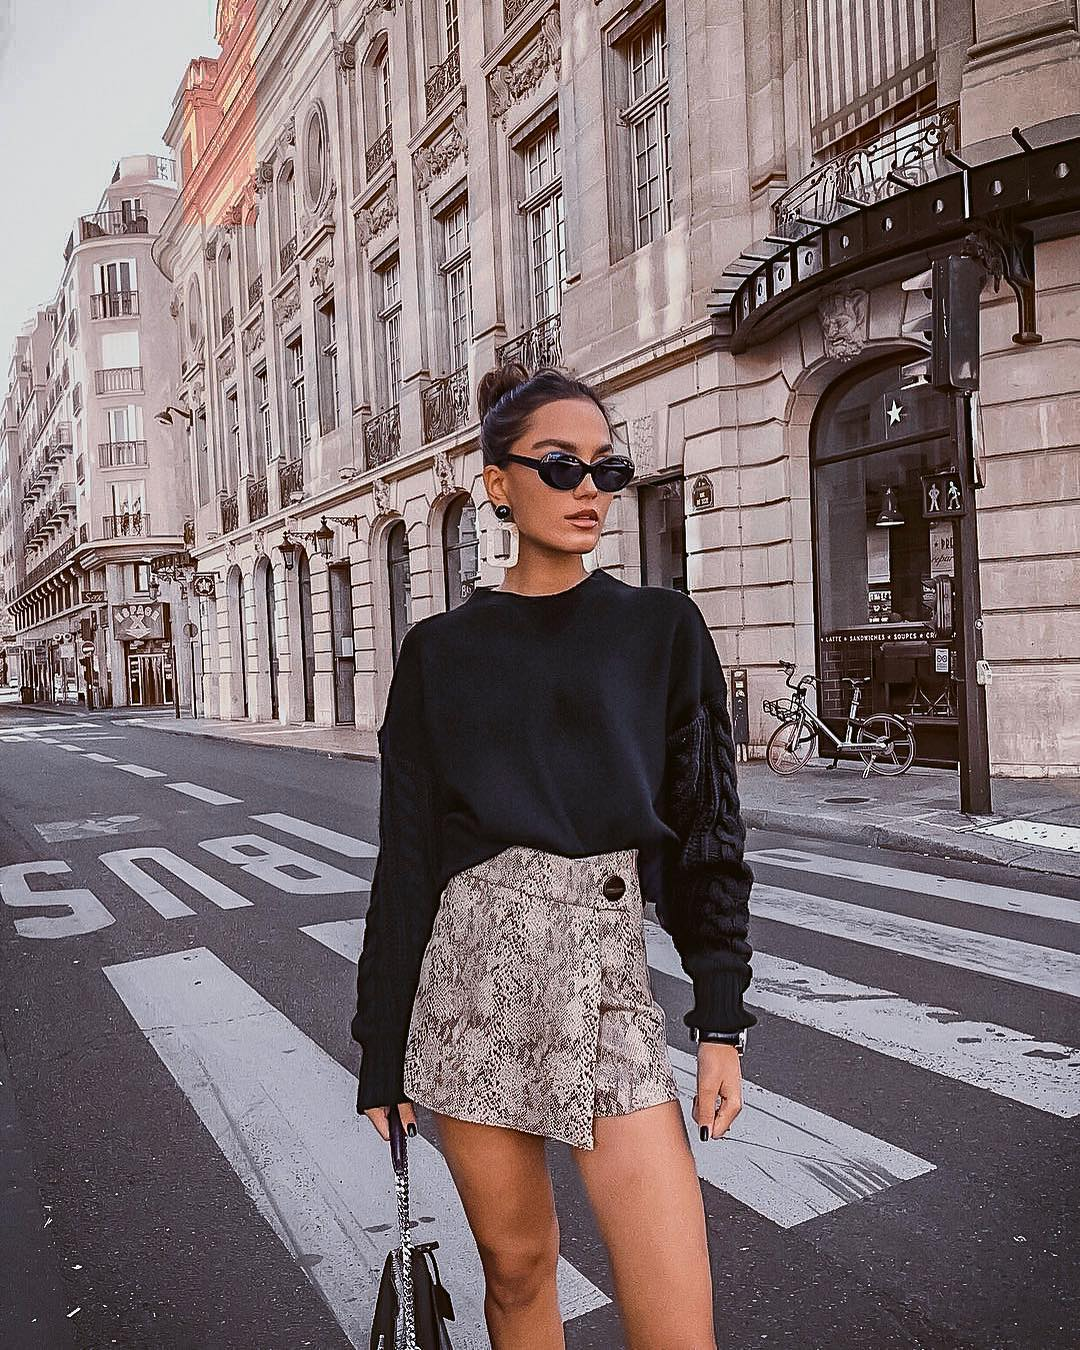 Bulky Sweater In Black And Wrap Mini Skirt For Fall 2020